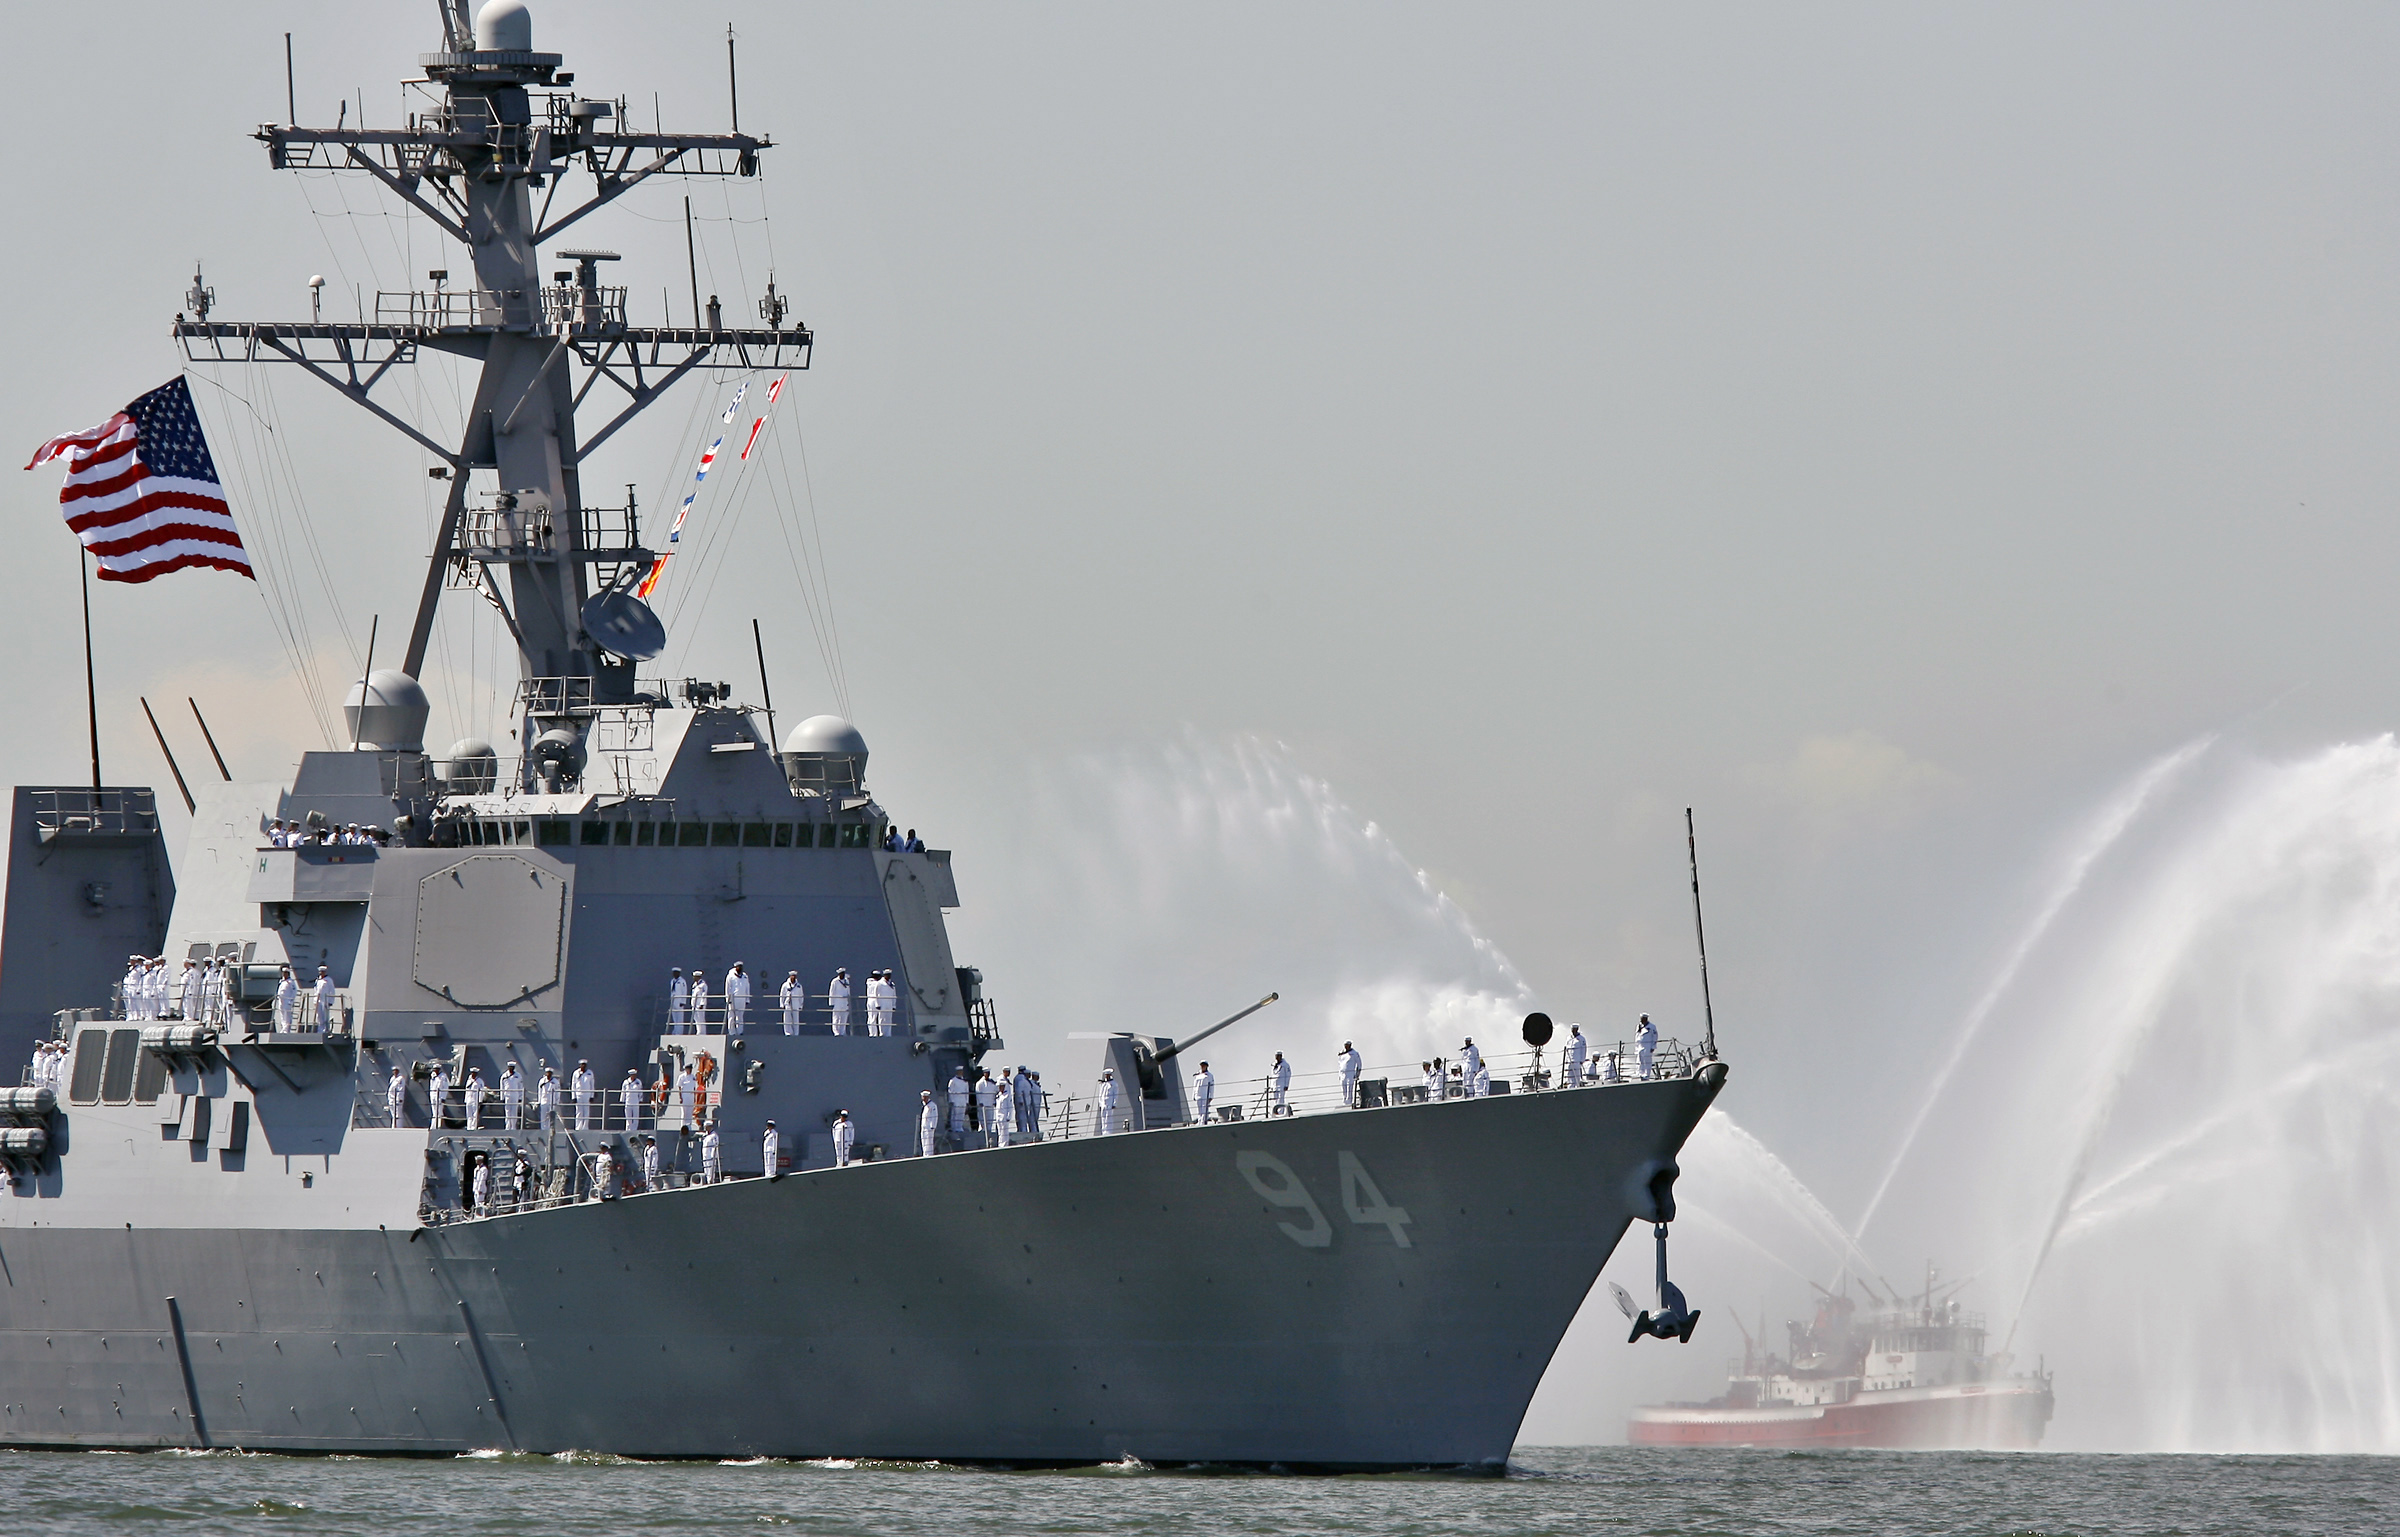 The U.S.S. Nitze is greeted by the spray of a fireboat to kick off Fleet Week in New York Harbor on May 24, 2006